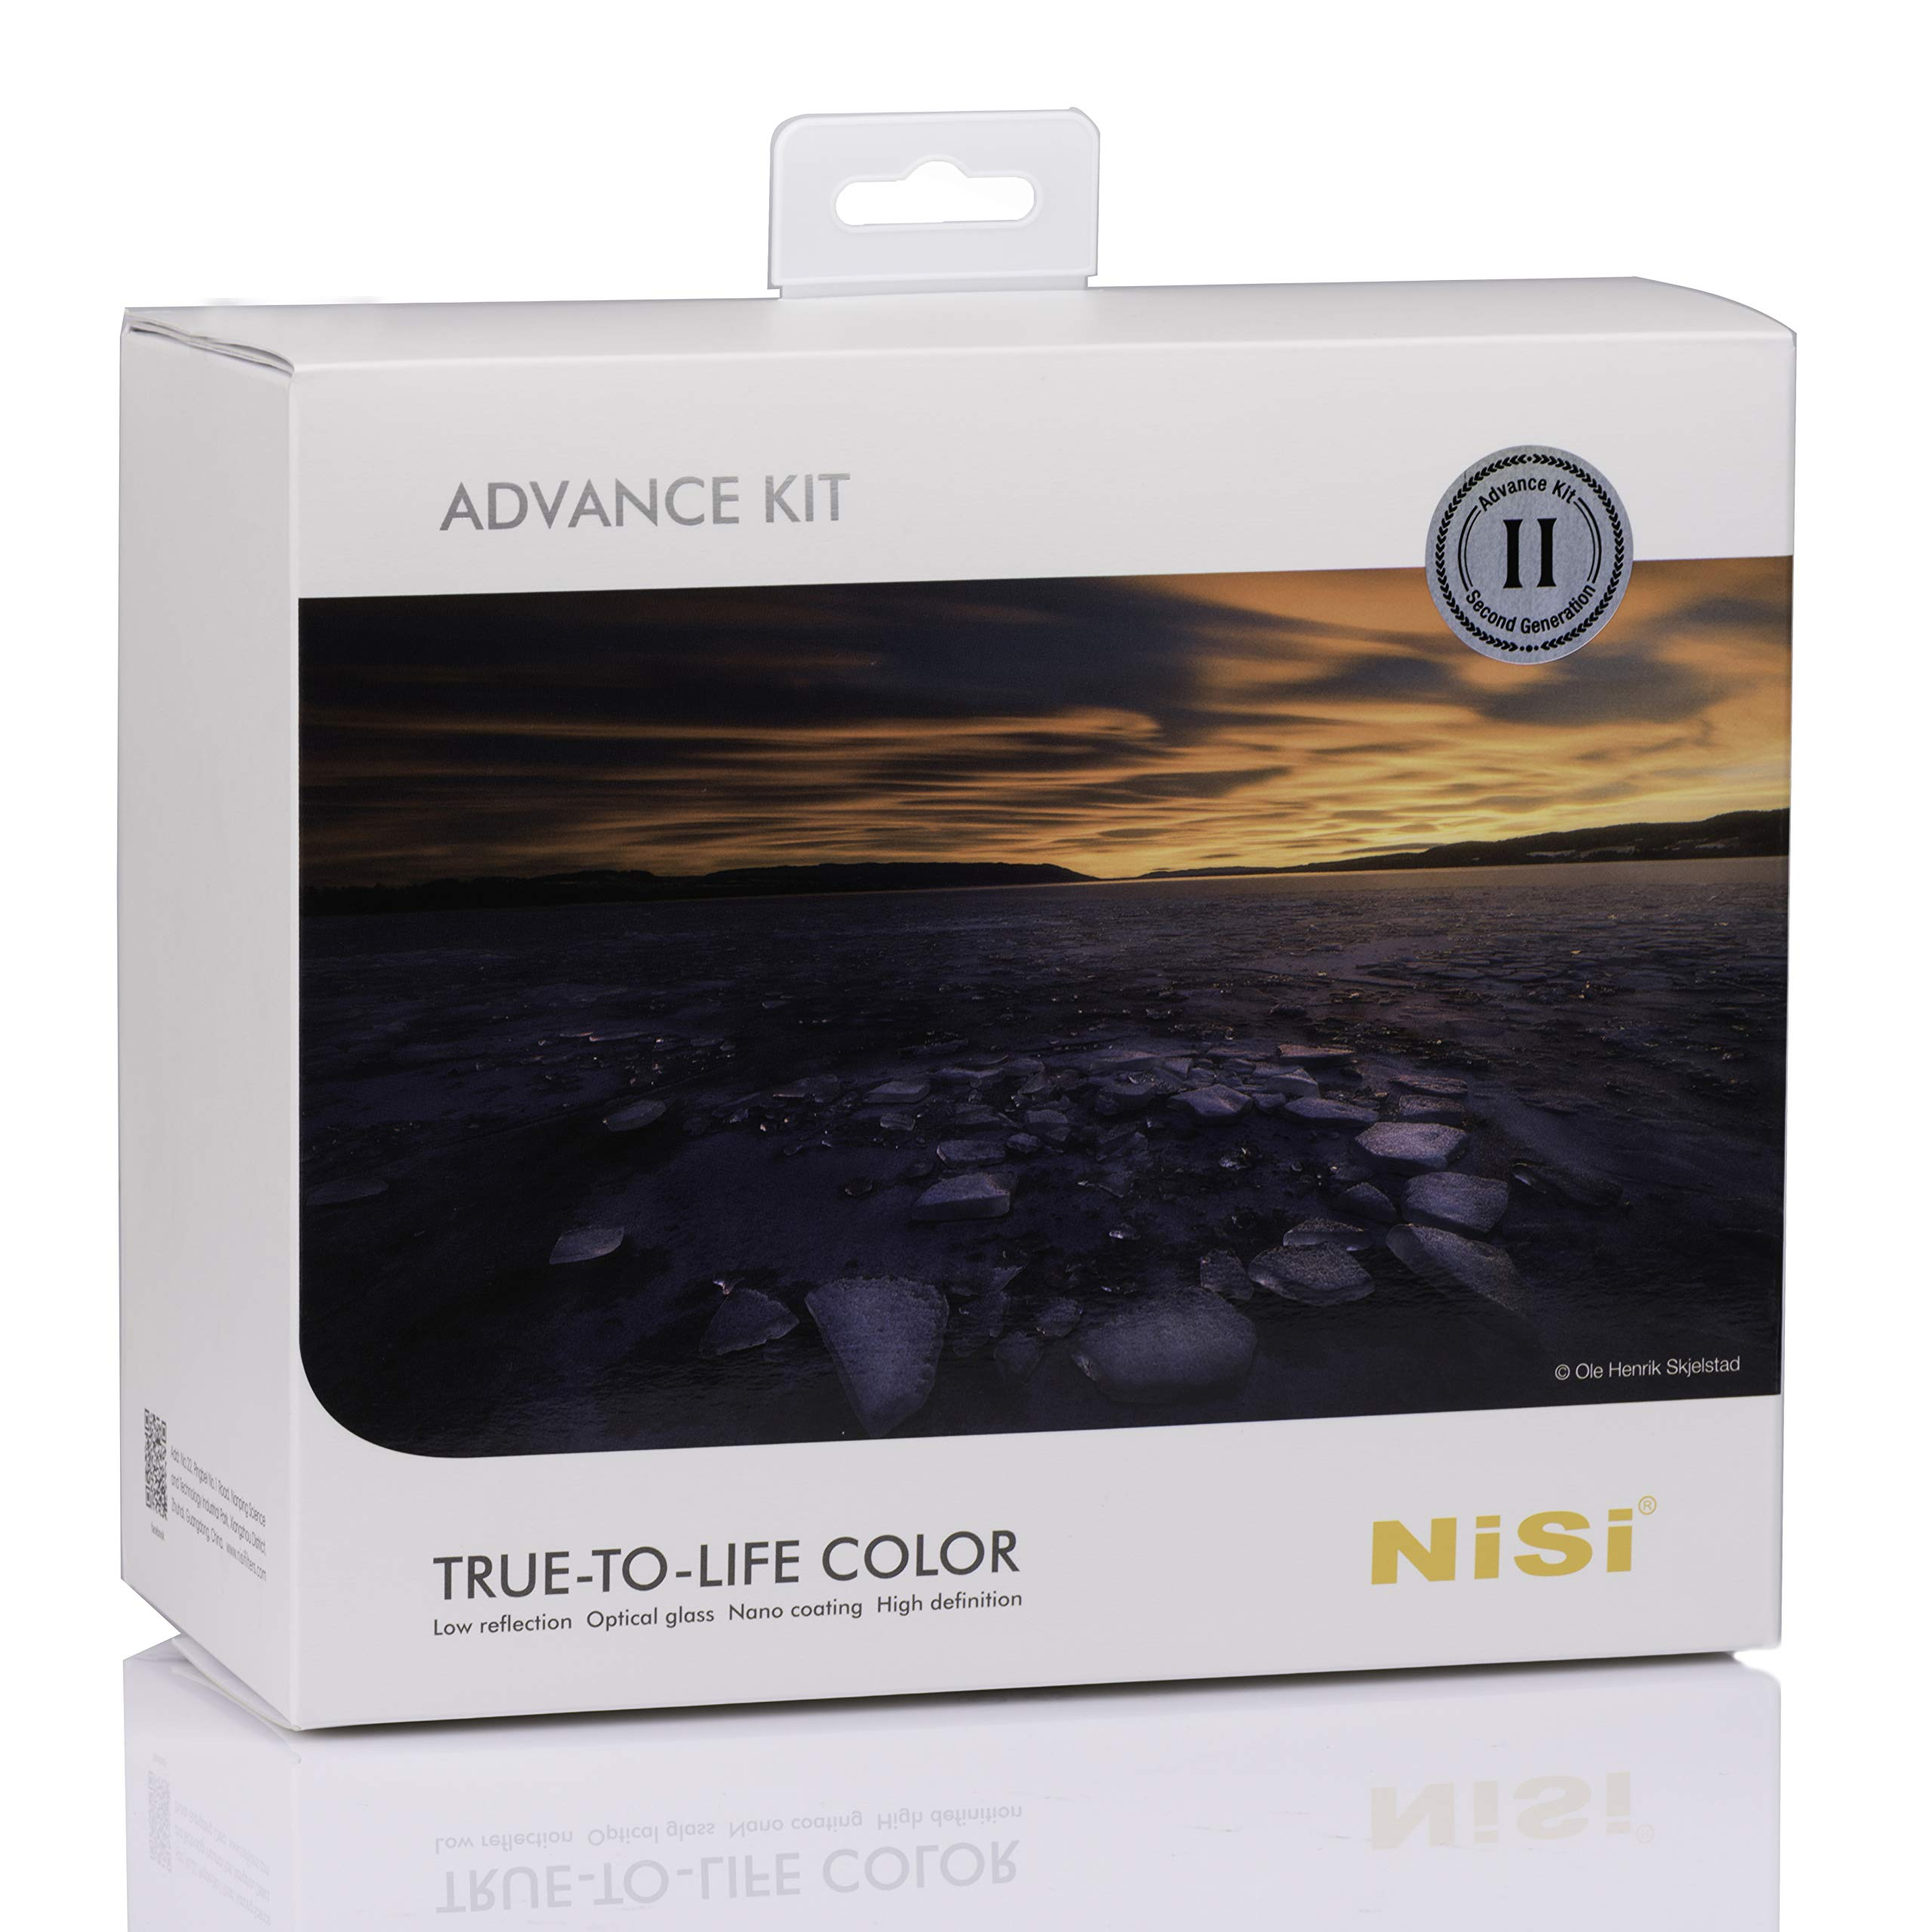 NiSi 100mm System Advanced Filter Kit-V5 Pro Filter Holder, ND Filters and Accessories by NiSi